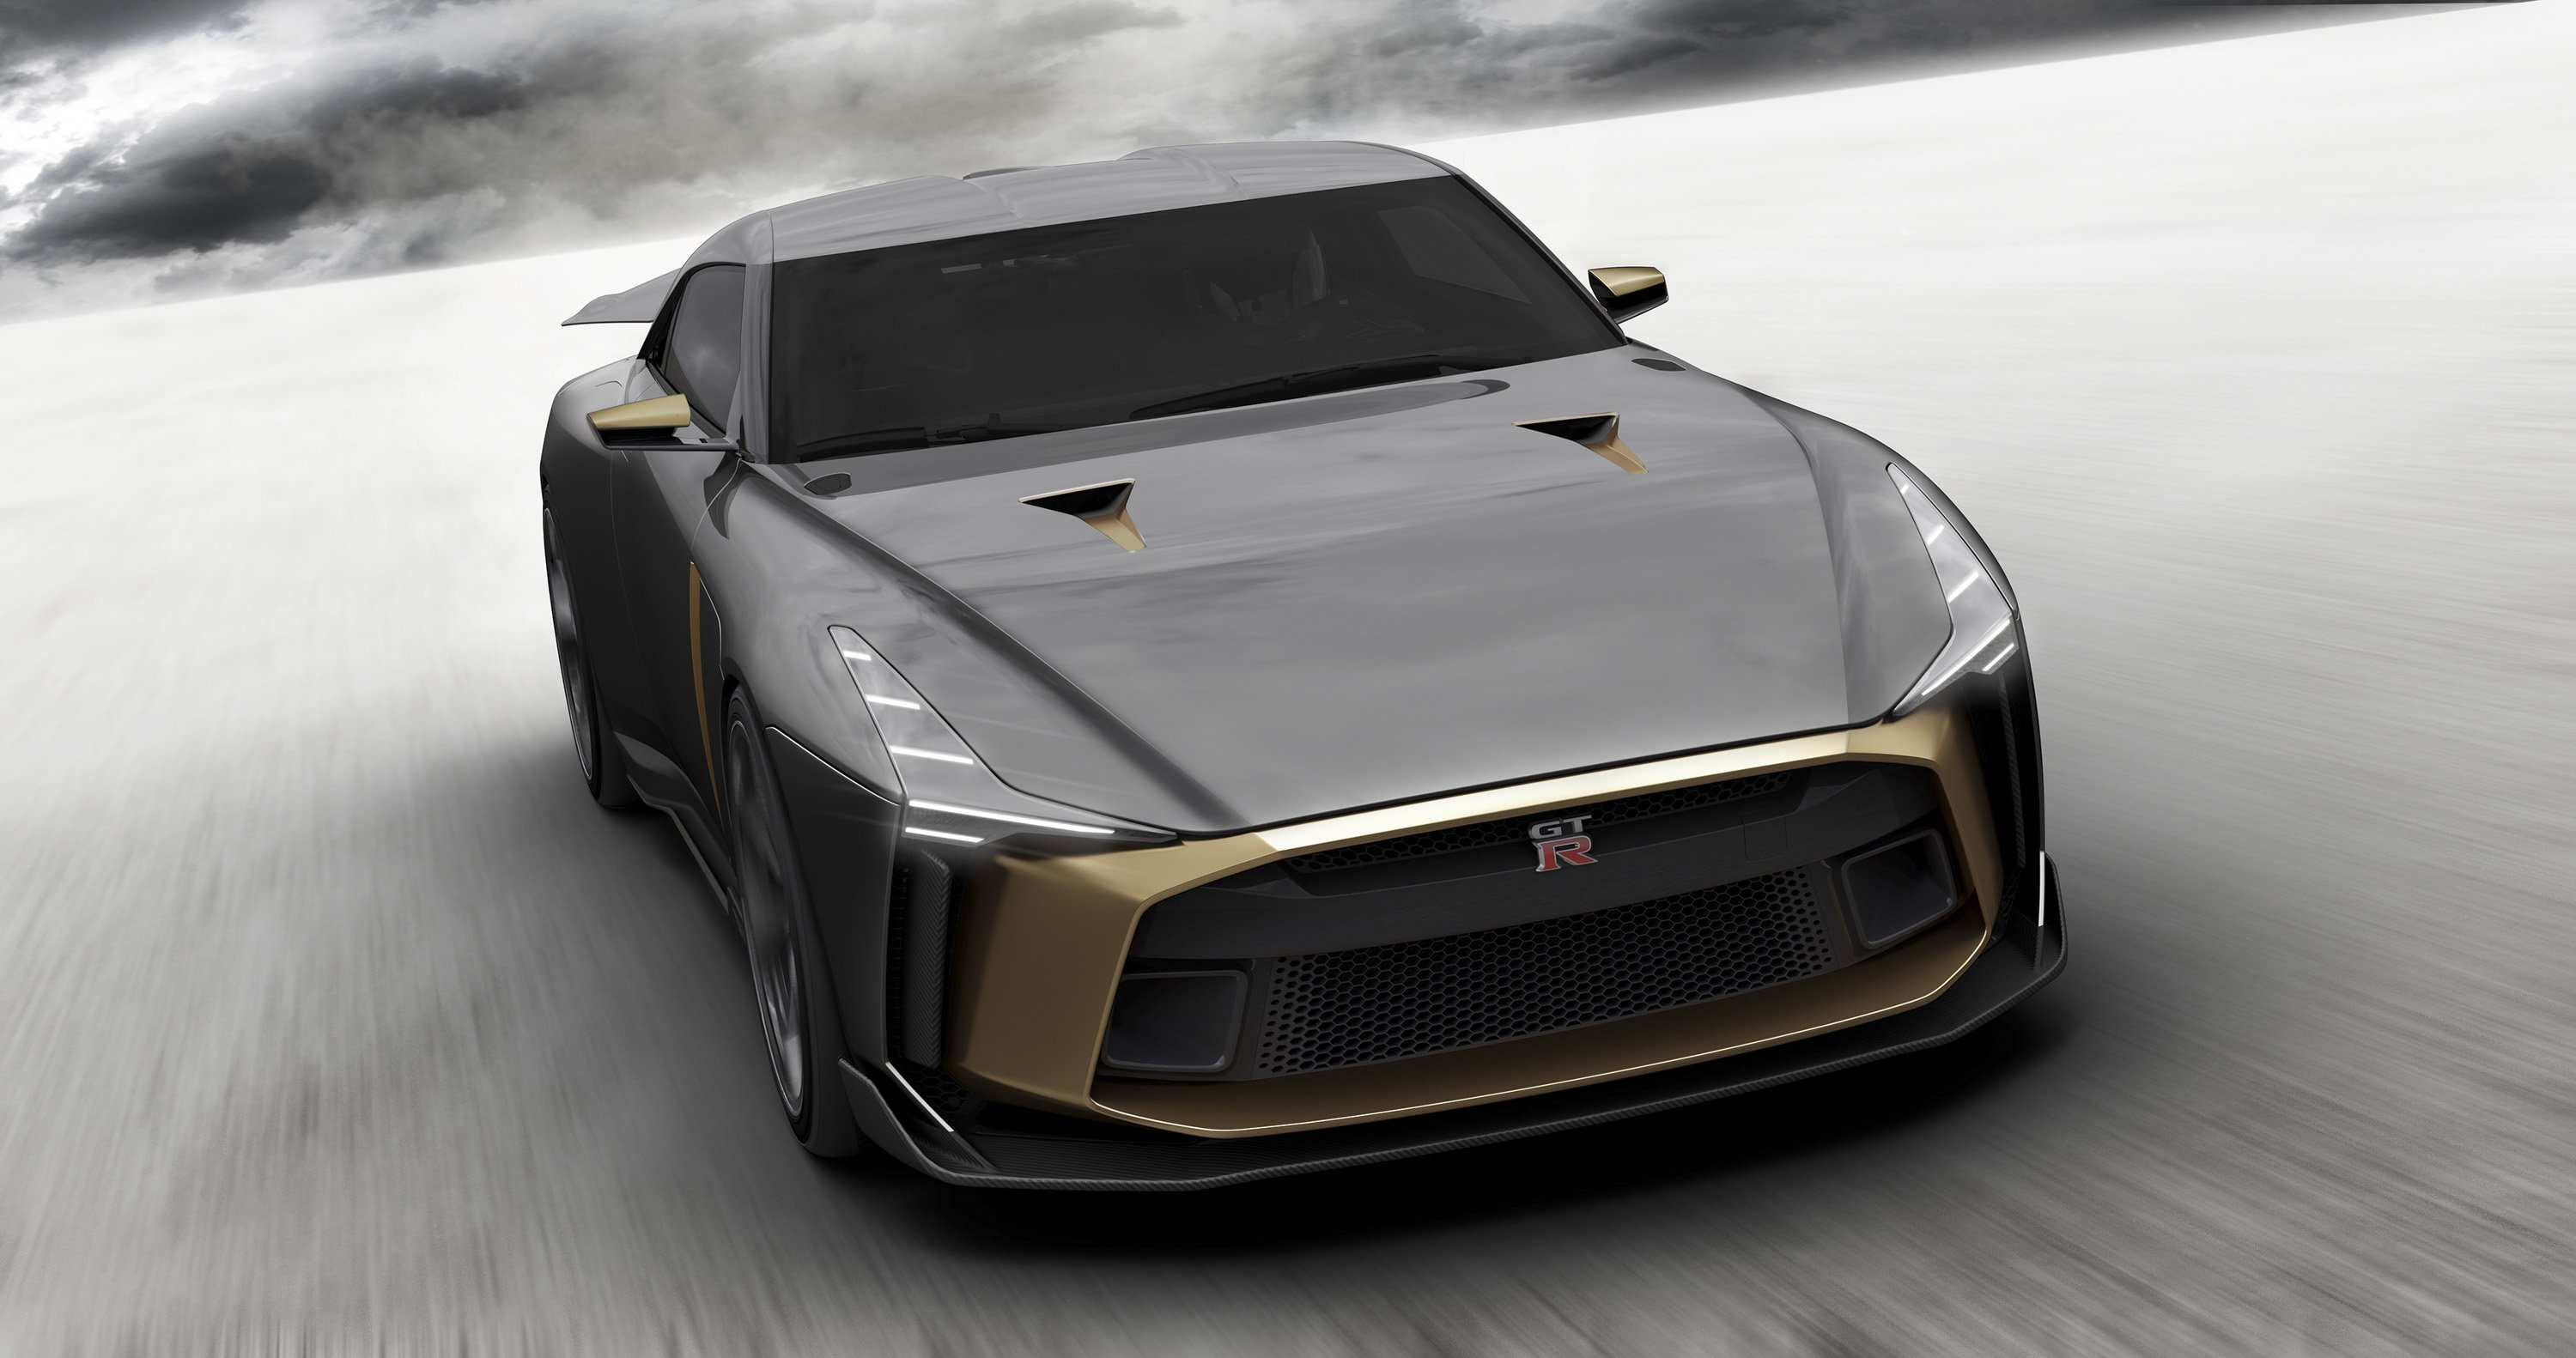 25 Best Review Nissan Gtr 2020 Picture with Nissan Gtr 2020